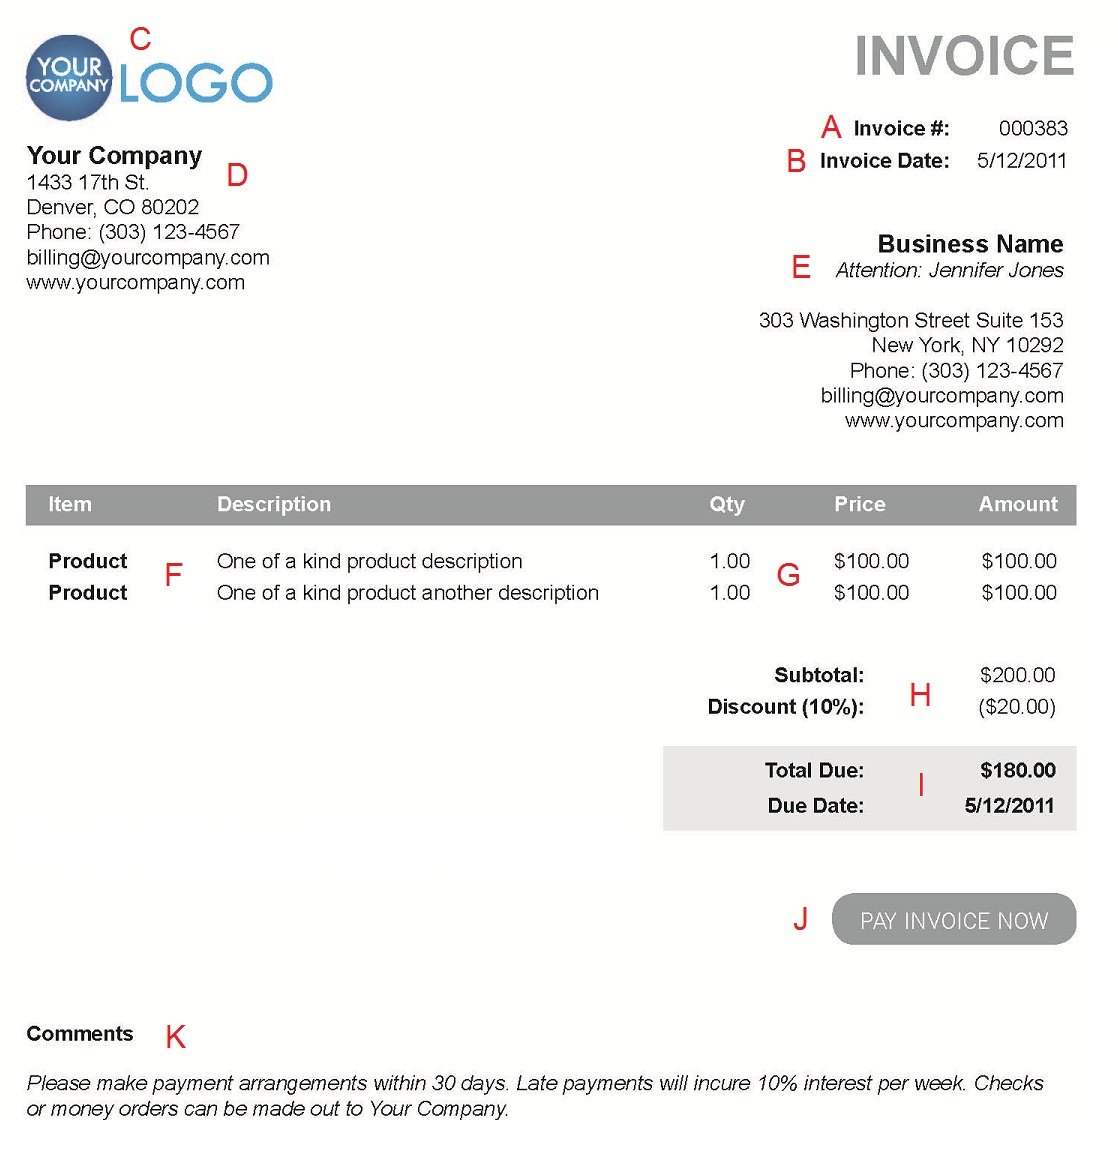 Opposenewapstandardsus  Fascinating The  Different Sections Of An Electronic Payment Invoice With Lovely A  With Appealing Mobile Invoicing Software Also Invoice Price Mazda  In Addition Subcontractor Invoice Template And What Is The Best Invoice Software As Well As Word Doc Invoice Additionally Construction Invoicing Software From Paysimplecom With Opposenewapstandardsus  Lovely The  Different Sections Of An Electronic Payment Invoice With Appealing A  And Fascinating Mobile Invoicing Software Also Invoice Price Mazda  In Addition Subcontractor Invoice Template From Paysimplecom